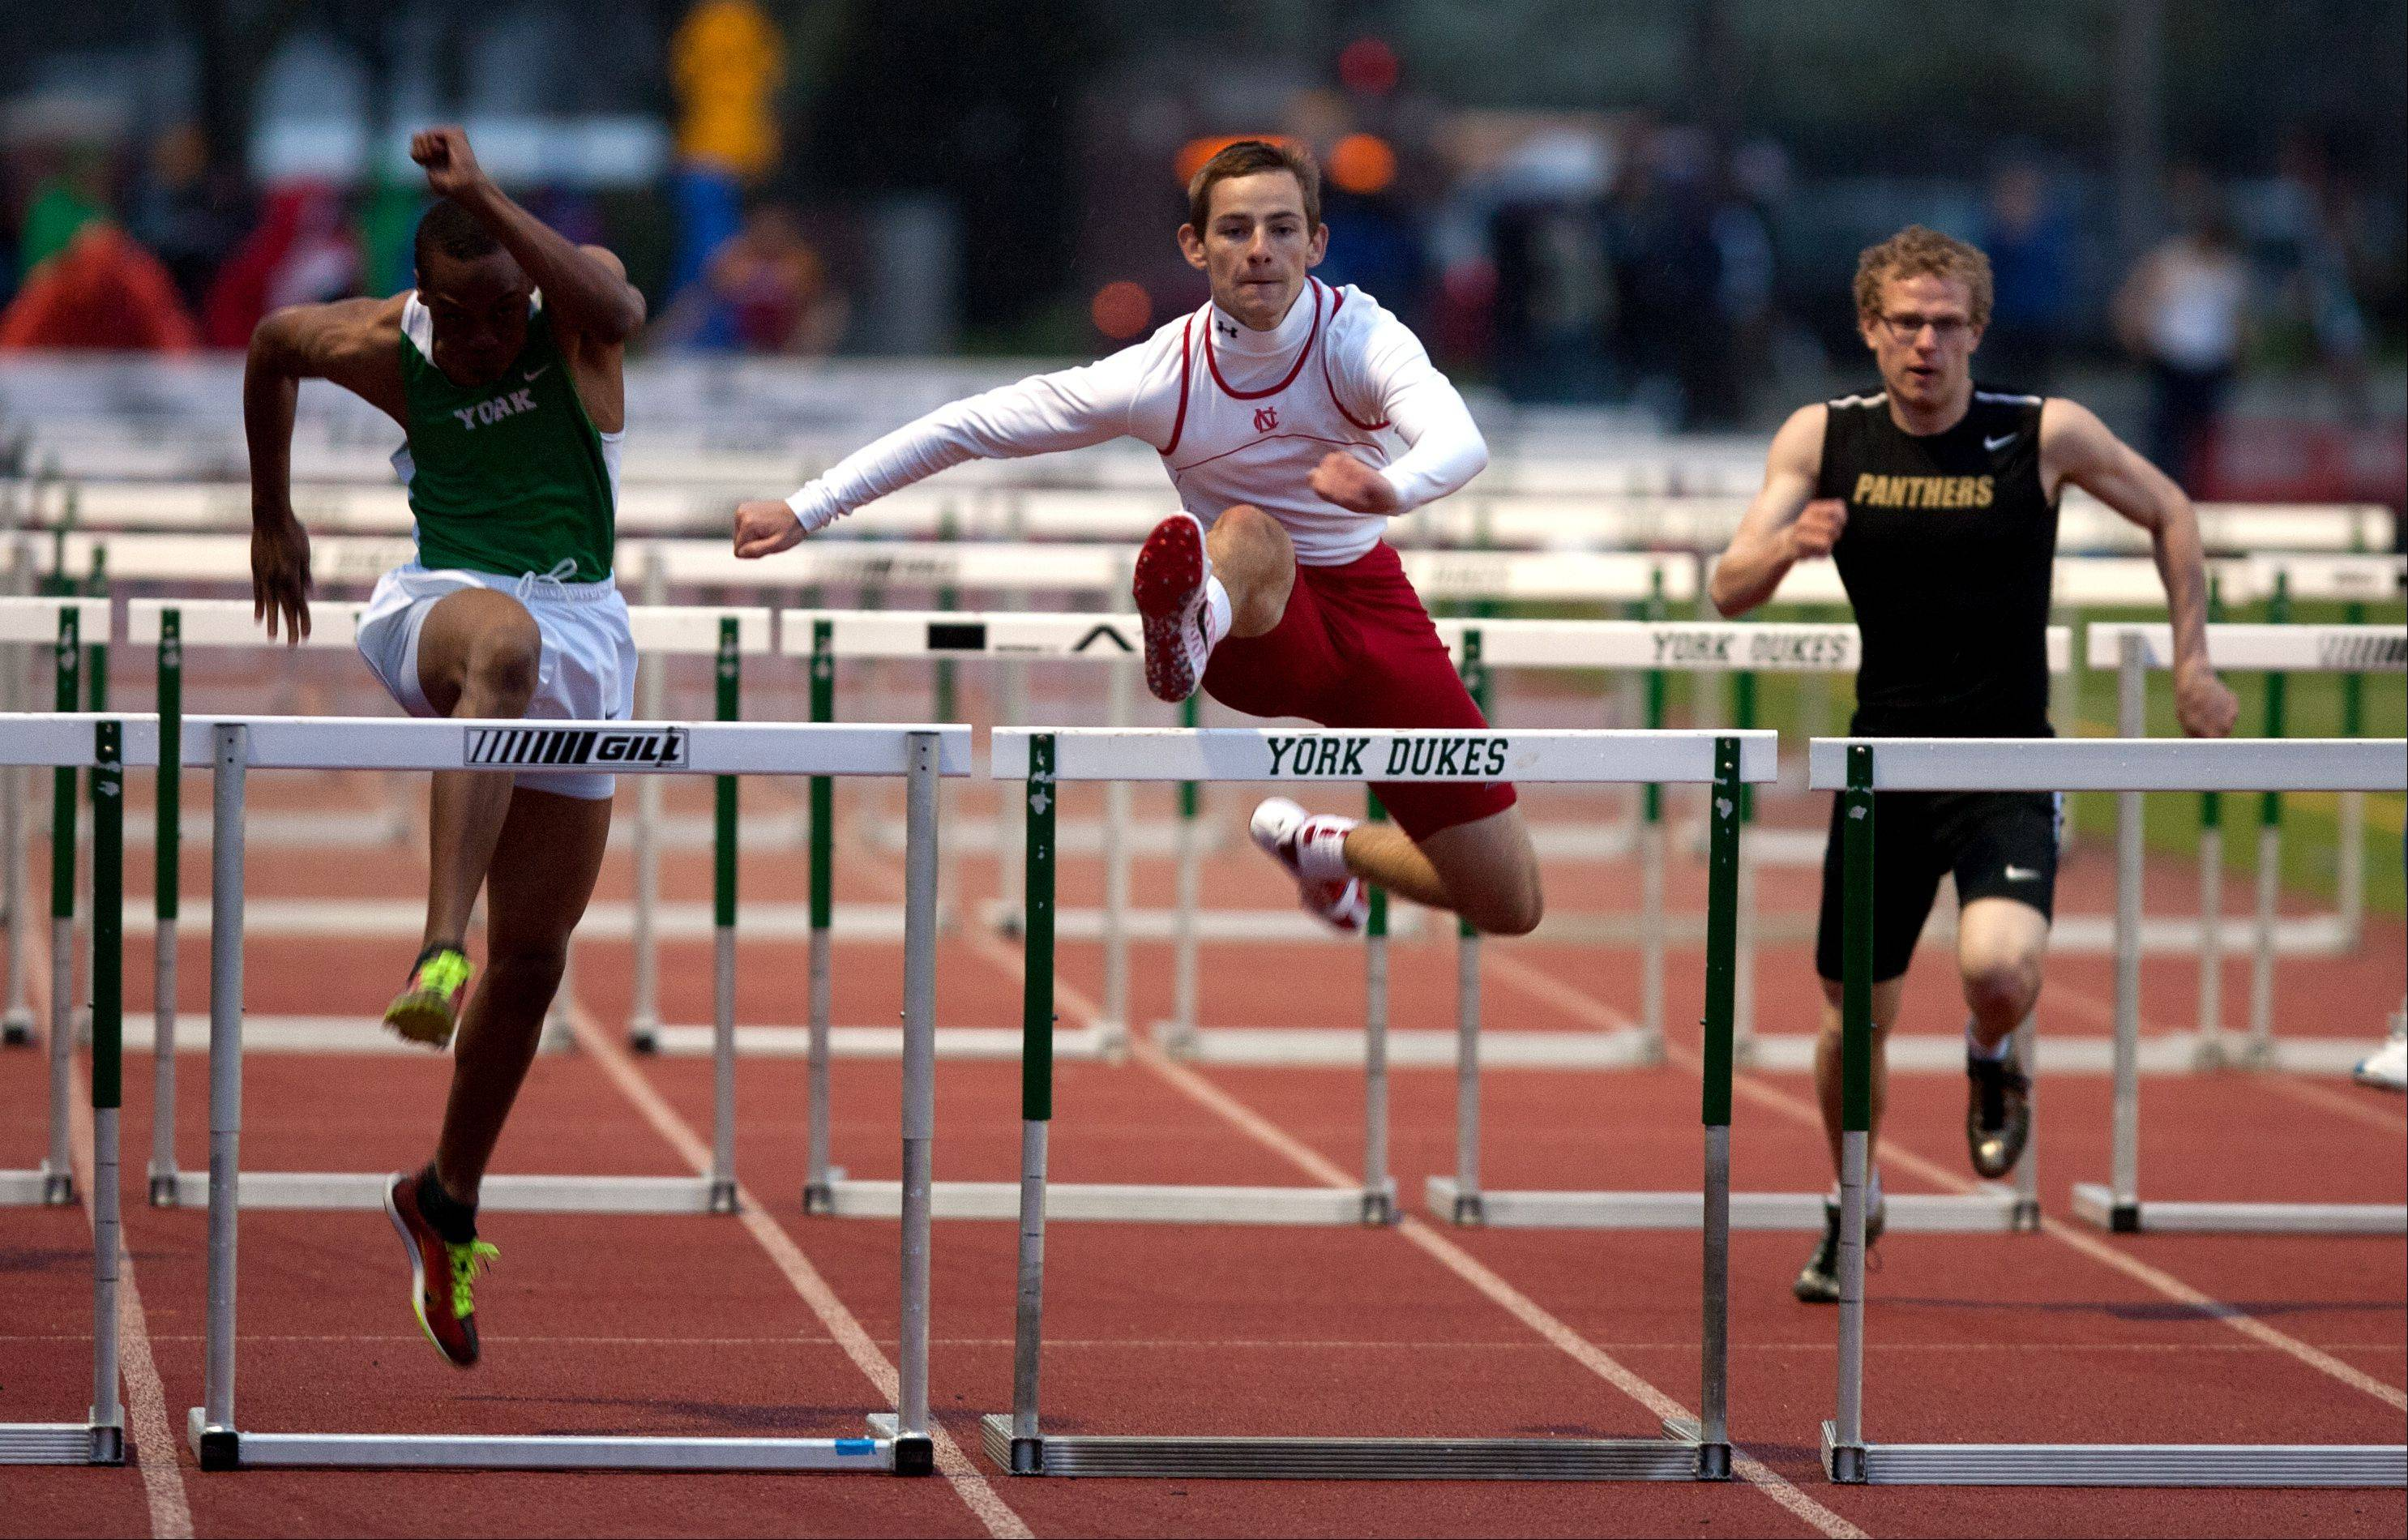 Naperville Central's Mike Jopes wins the 110 meter high hurdles, during the DuPage County boys track invitational at York High School.